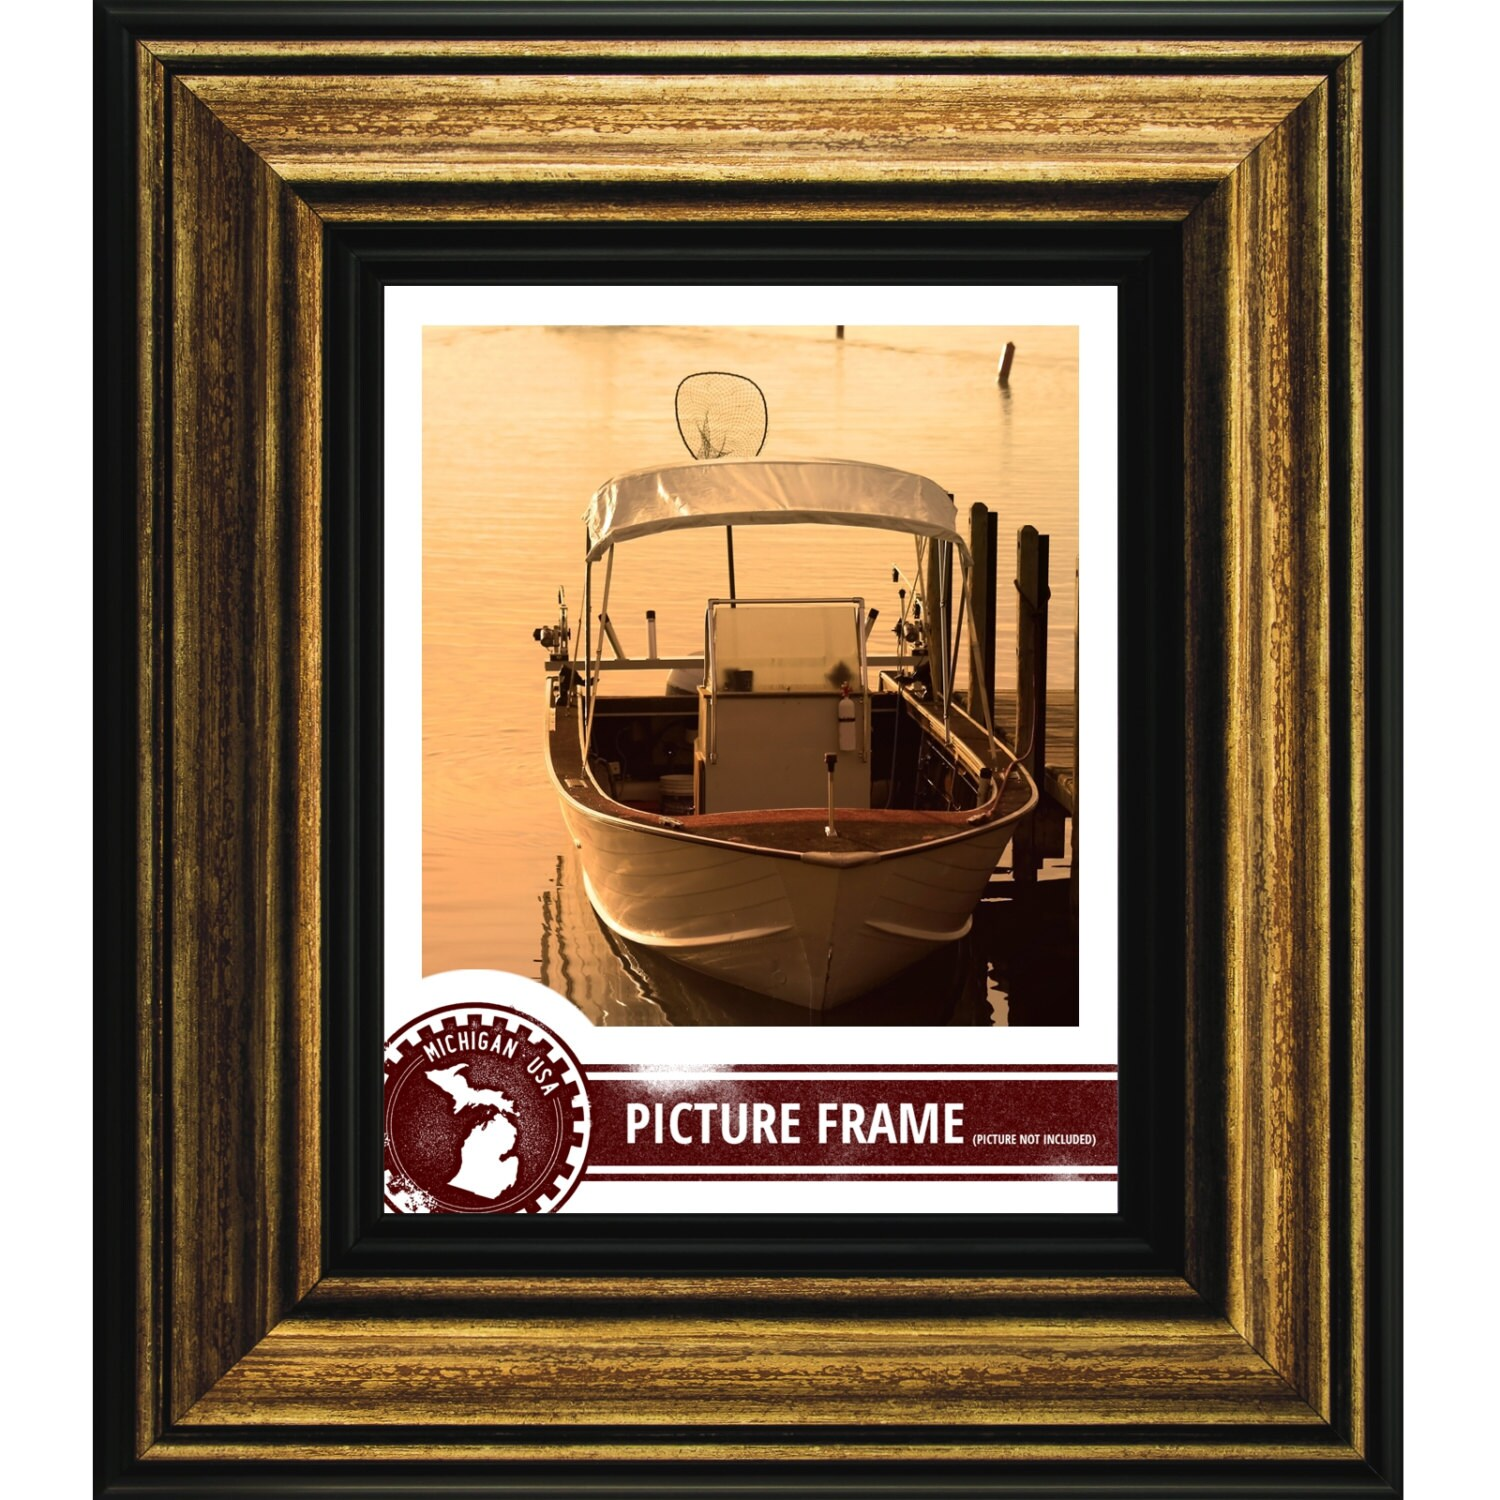 Craig frames 10x13 inch aged gold and black picture frame sonora sold by craigframes jeuxipadfo Image collections